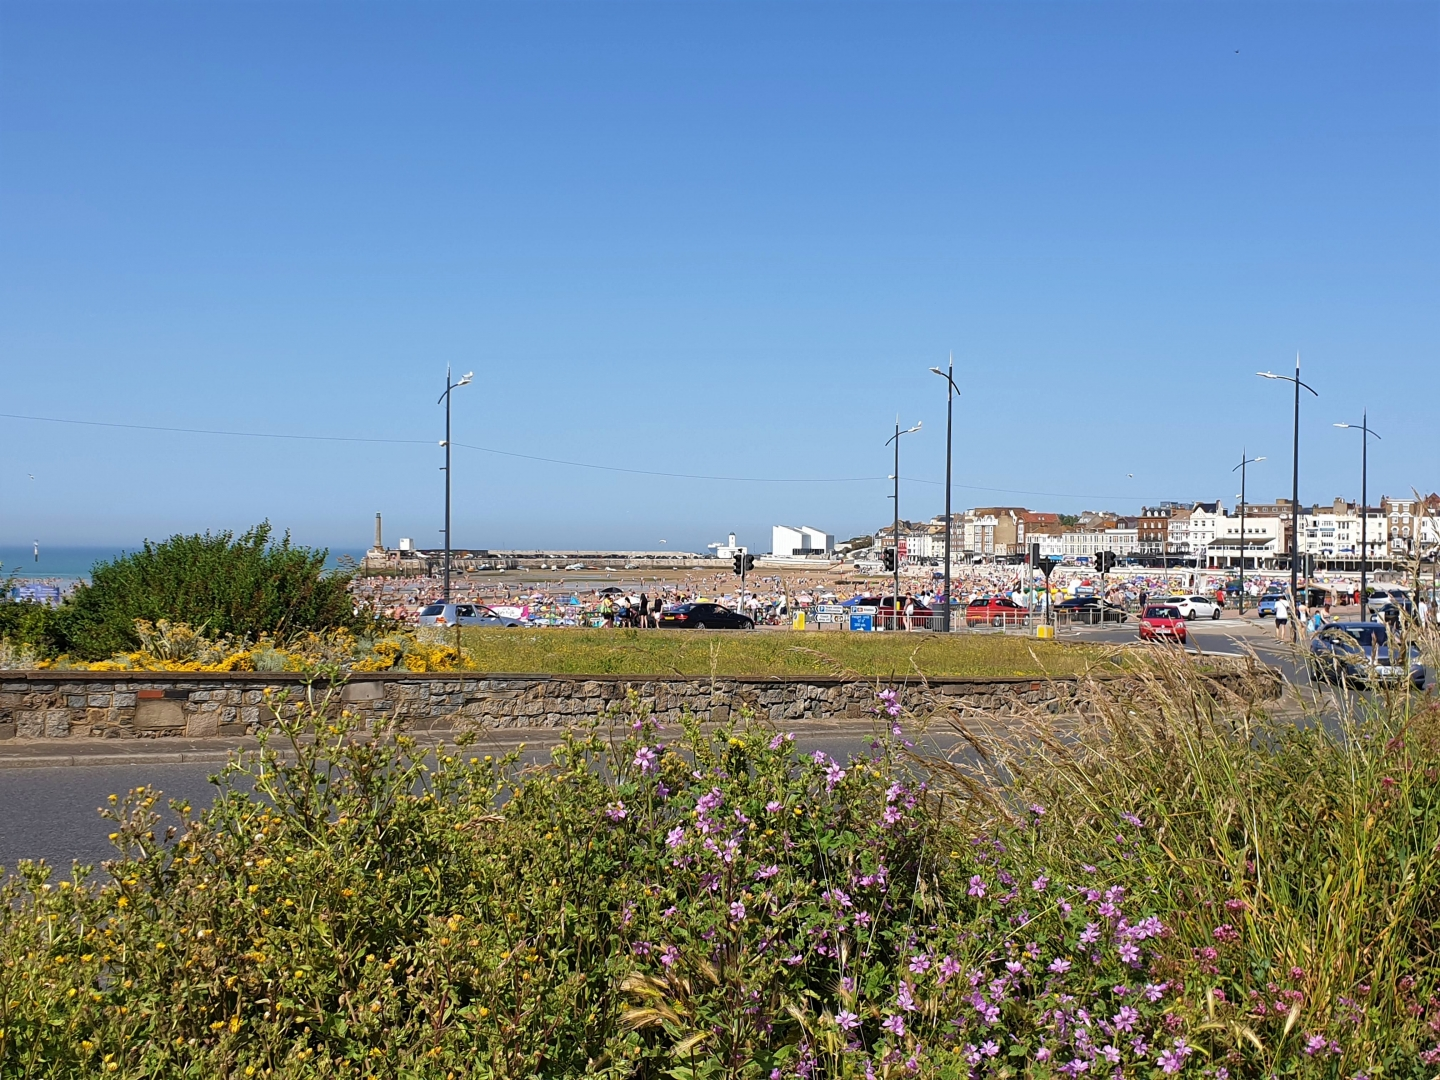 View of Margate beach from near the train station